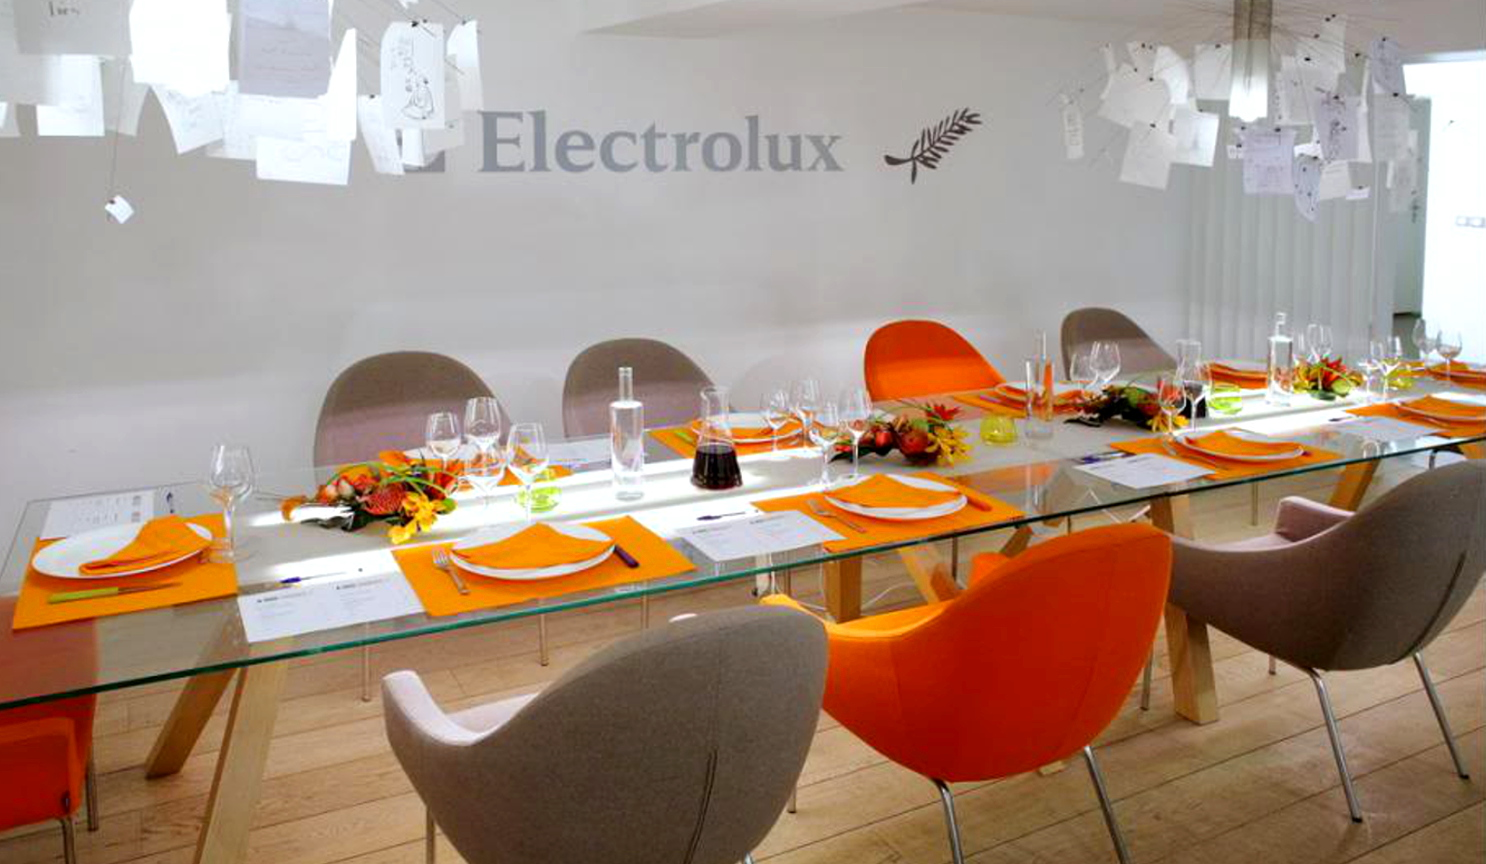 A vos toques – Electrolux